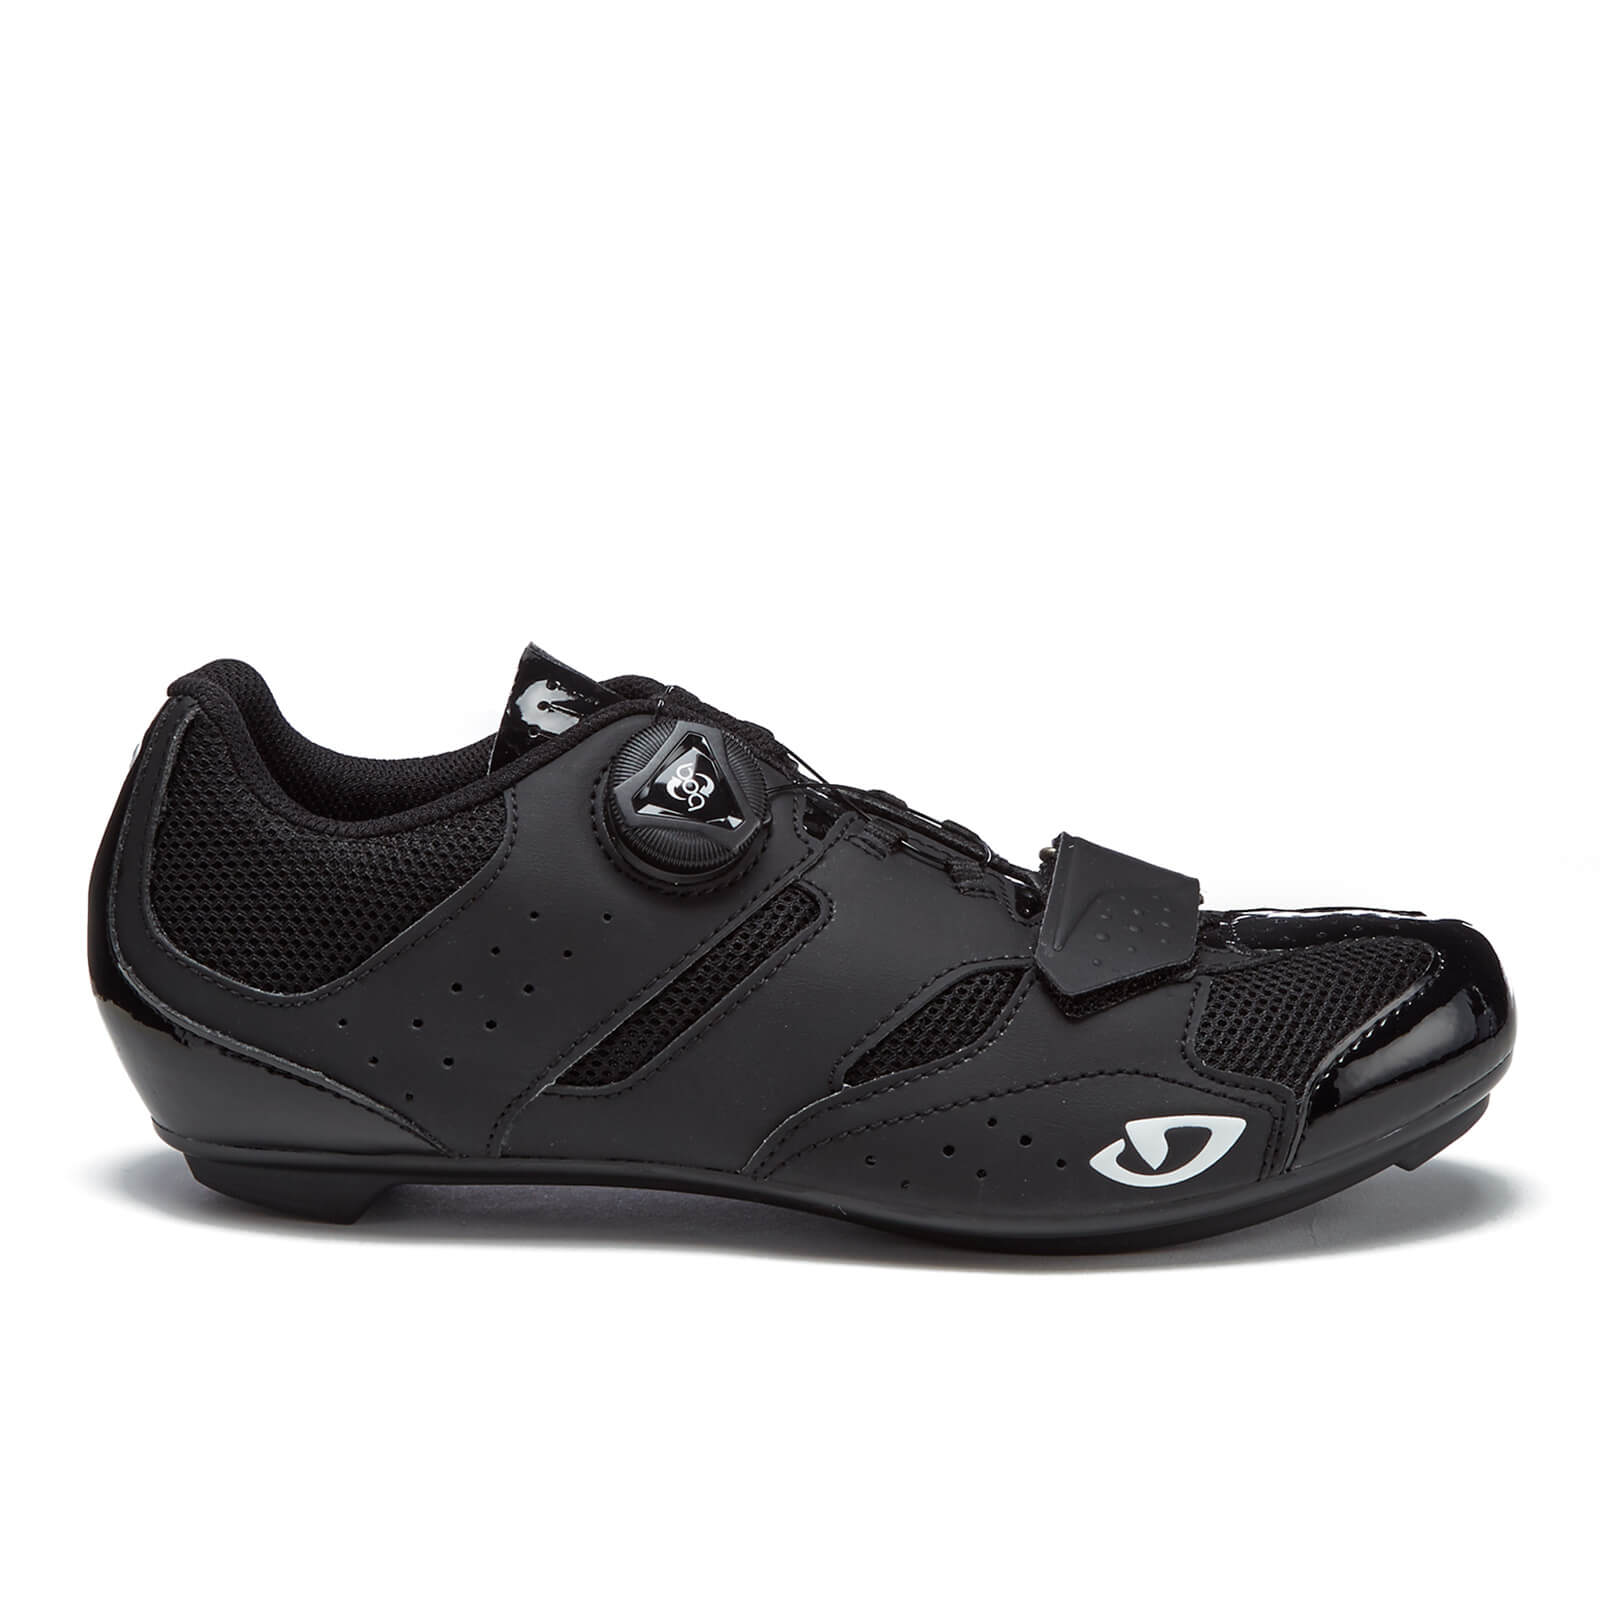 416ac9104c5 Giro Savix Women s Road Cycling Shoes - Black White